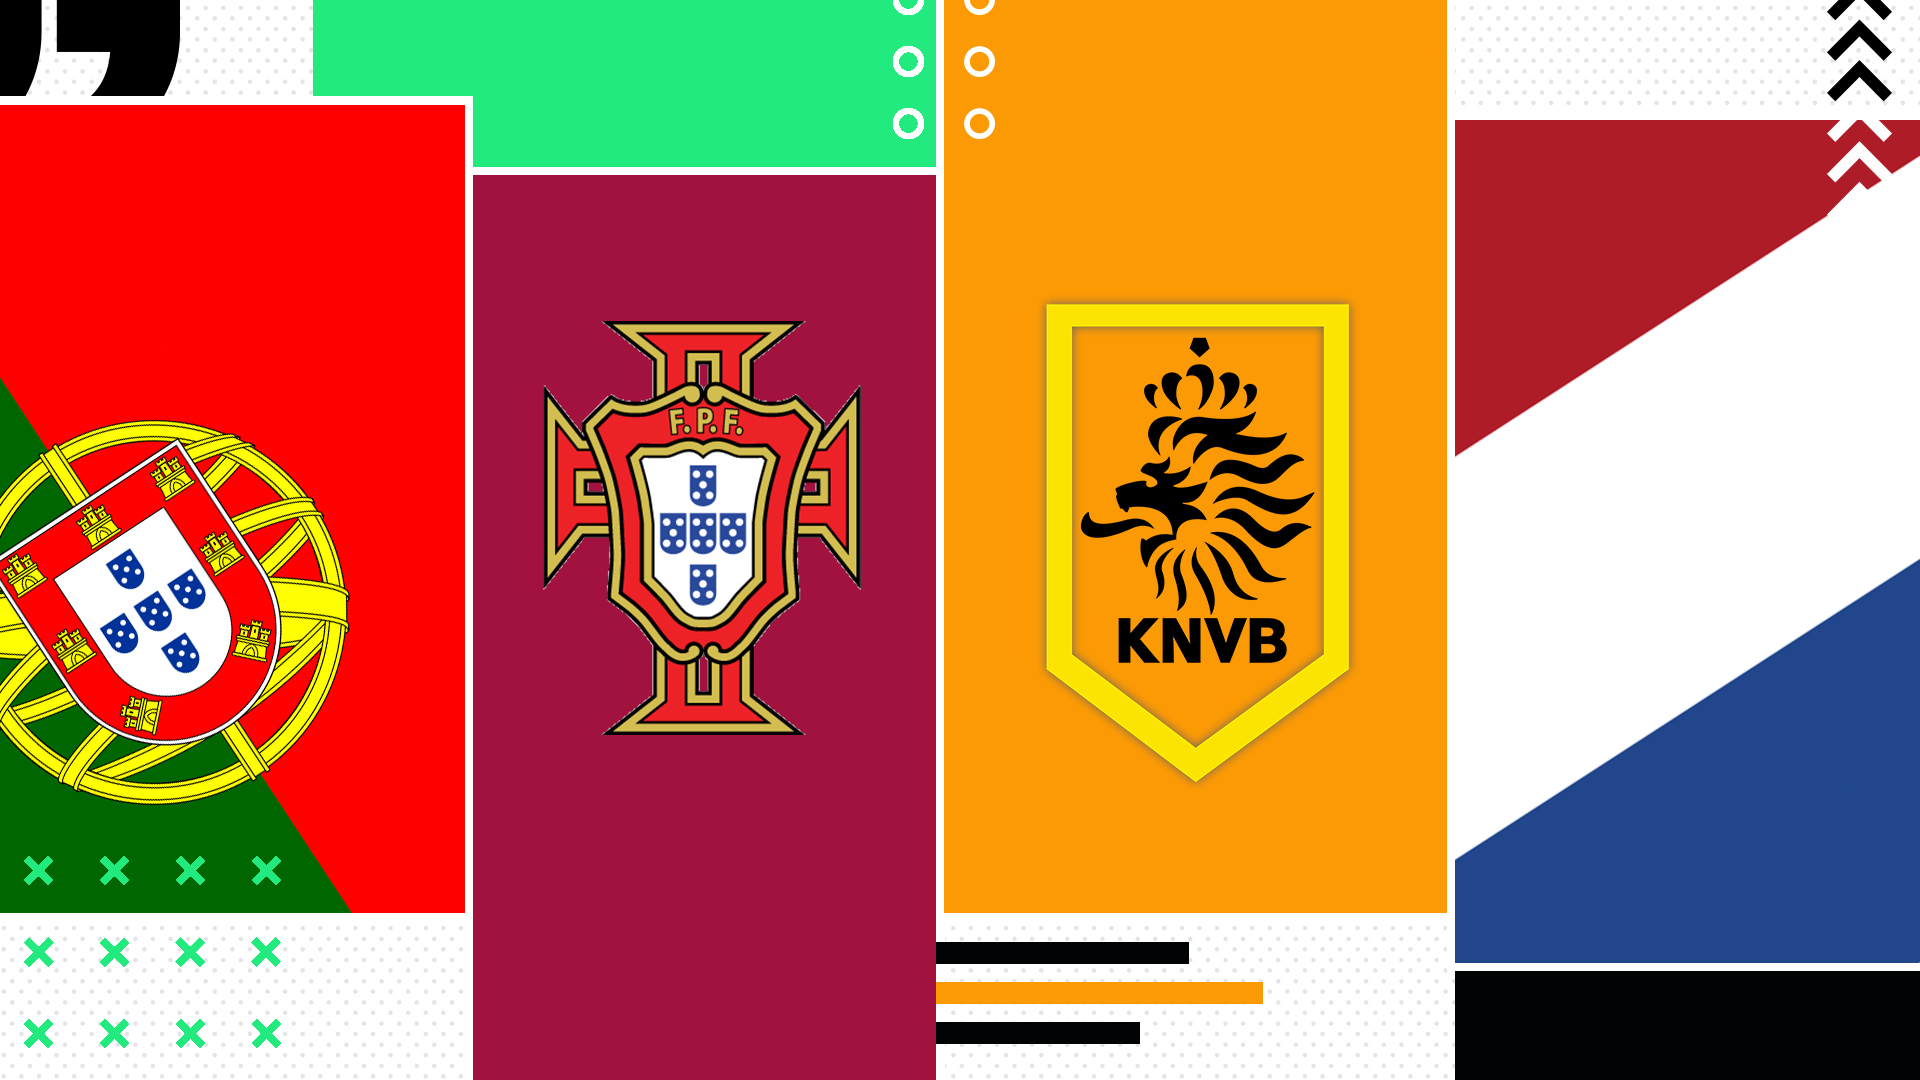 La Nations League è portoghese: decide Guedes